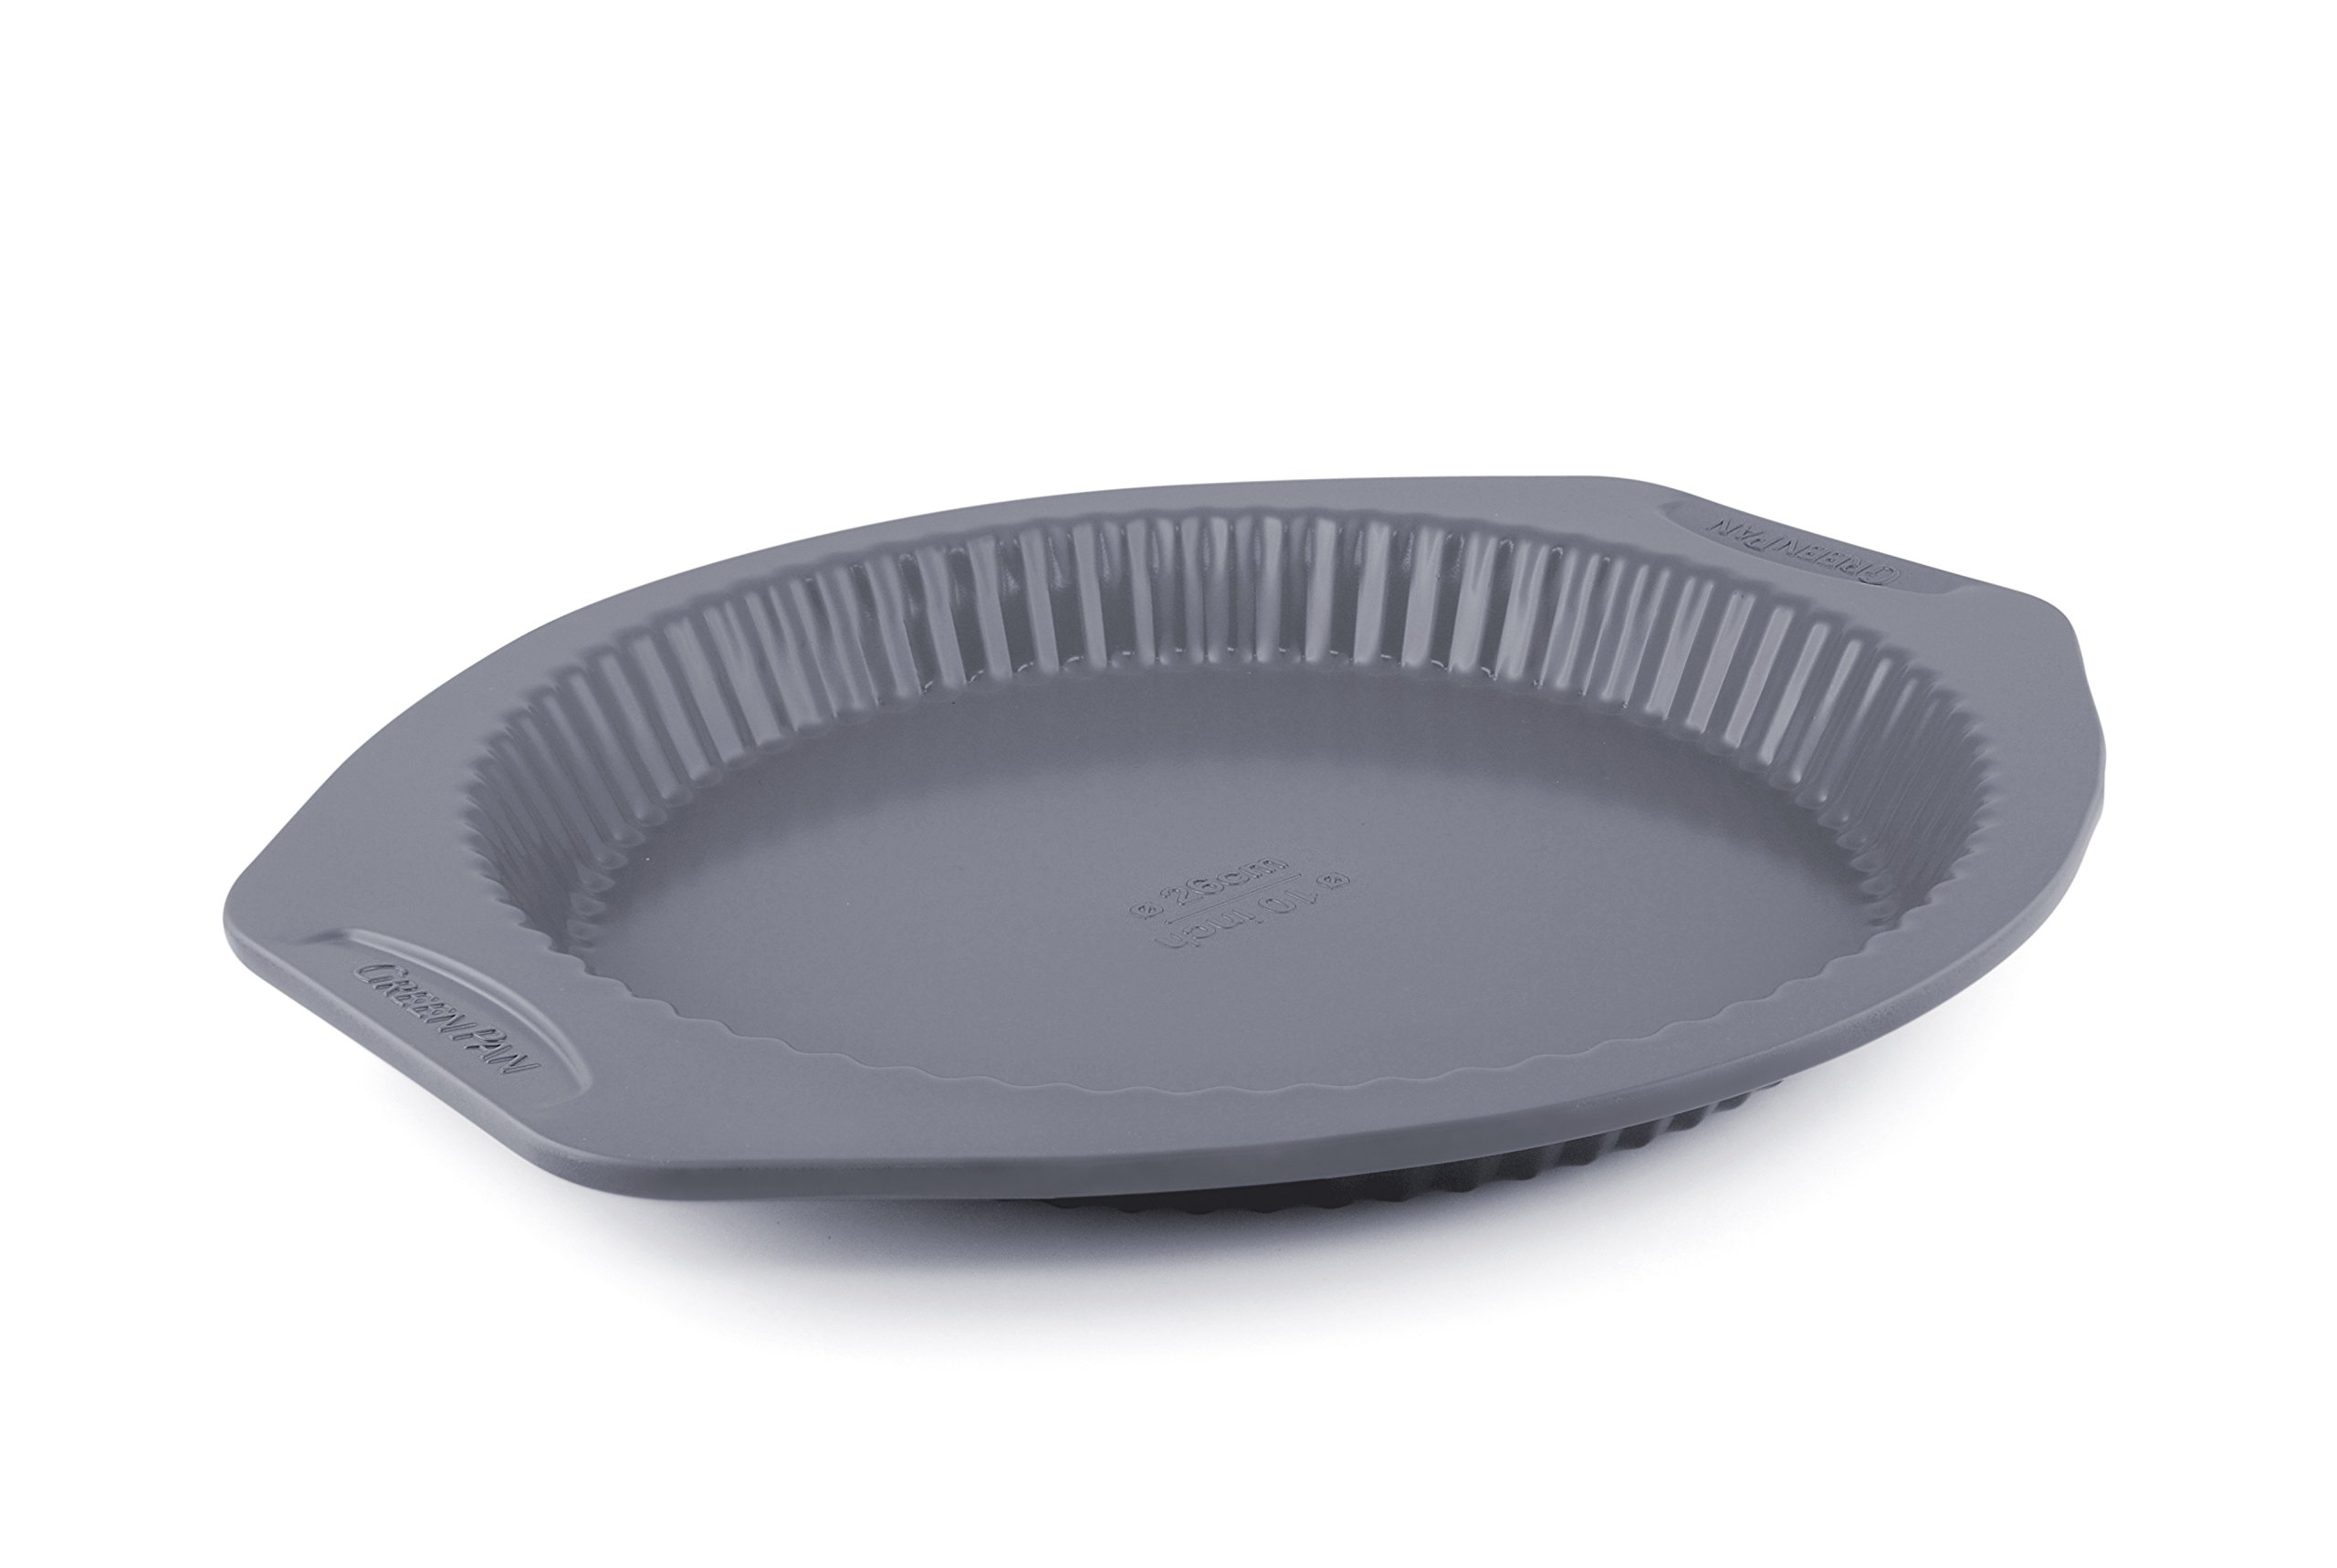 GreenPan 10 Inch Carbon Steel Non-Stick Ceramic Tart Pan by GreenPan (Image #1)